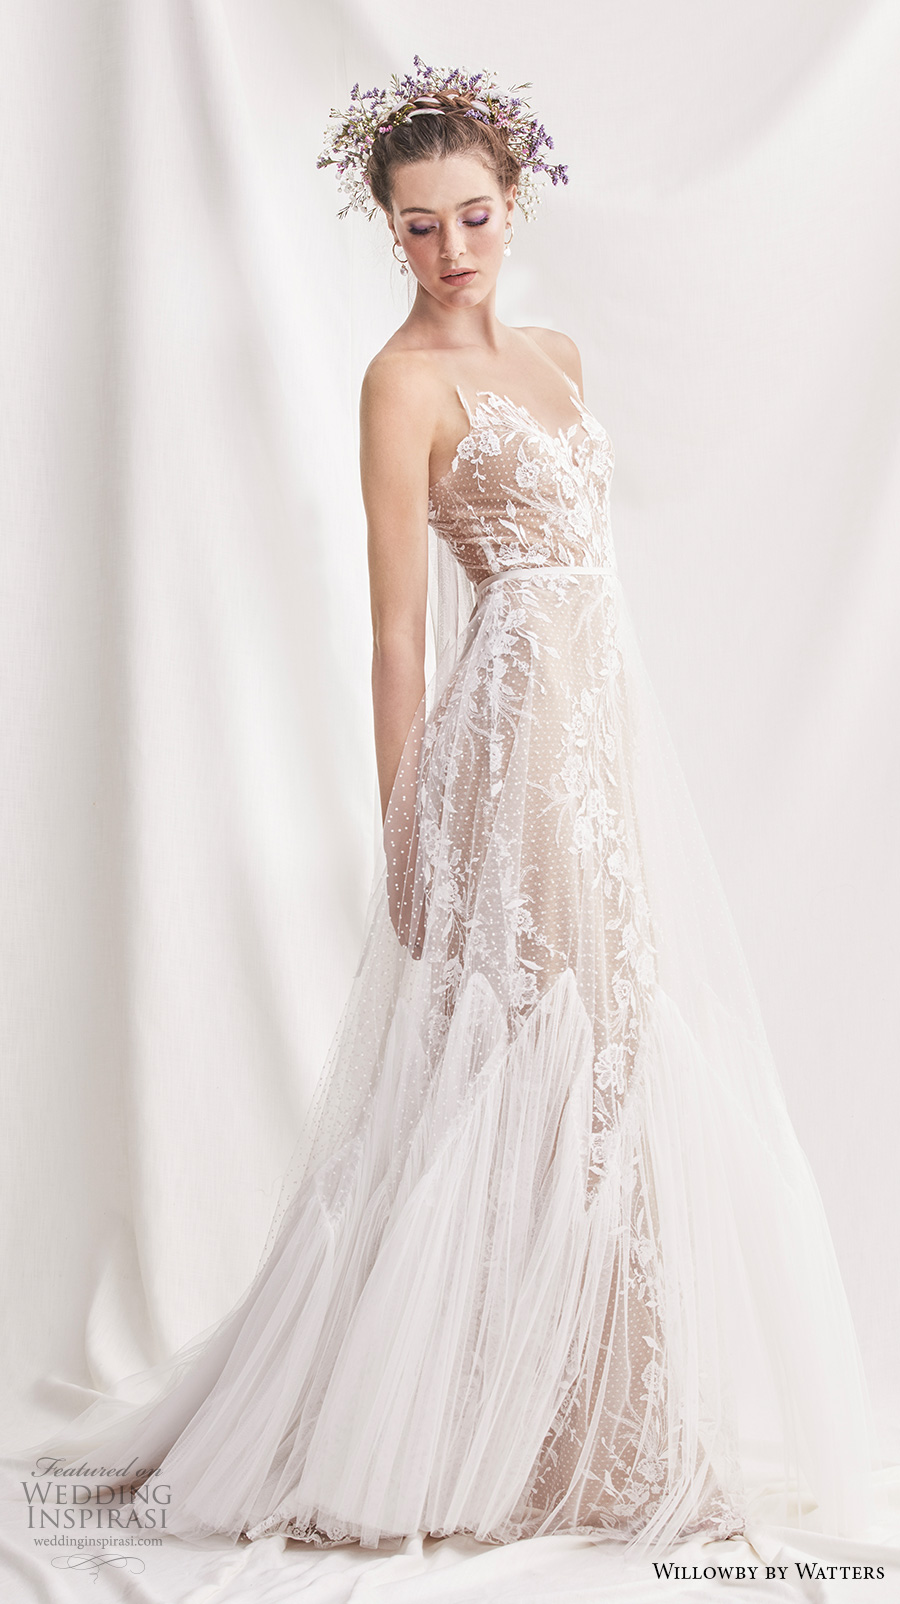 willowby by watters spring 2019 bridal sleeveless sheer strap sweetheart neckline full embellishment romantic a  line wedding dress sheer button back sweep train (4) mv